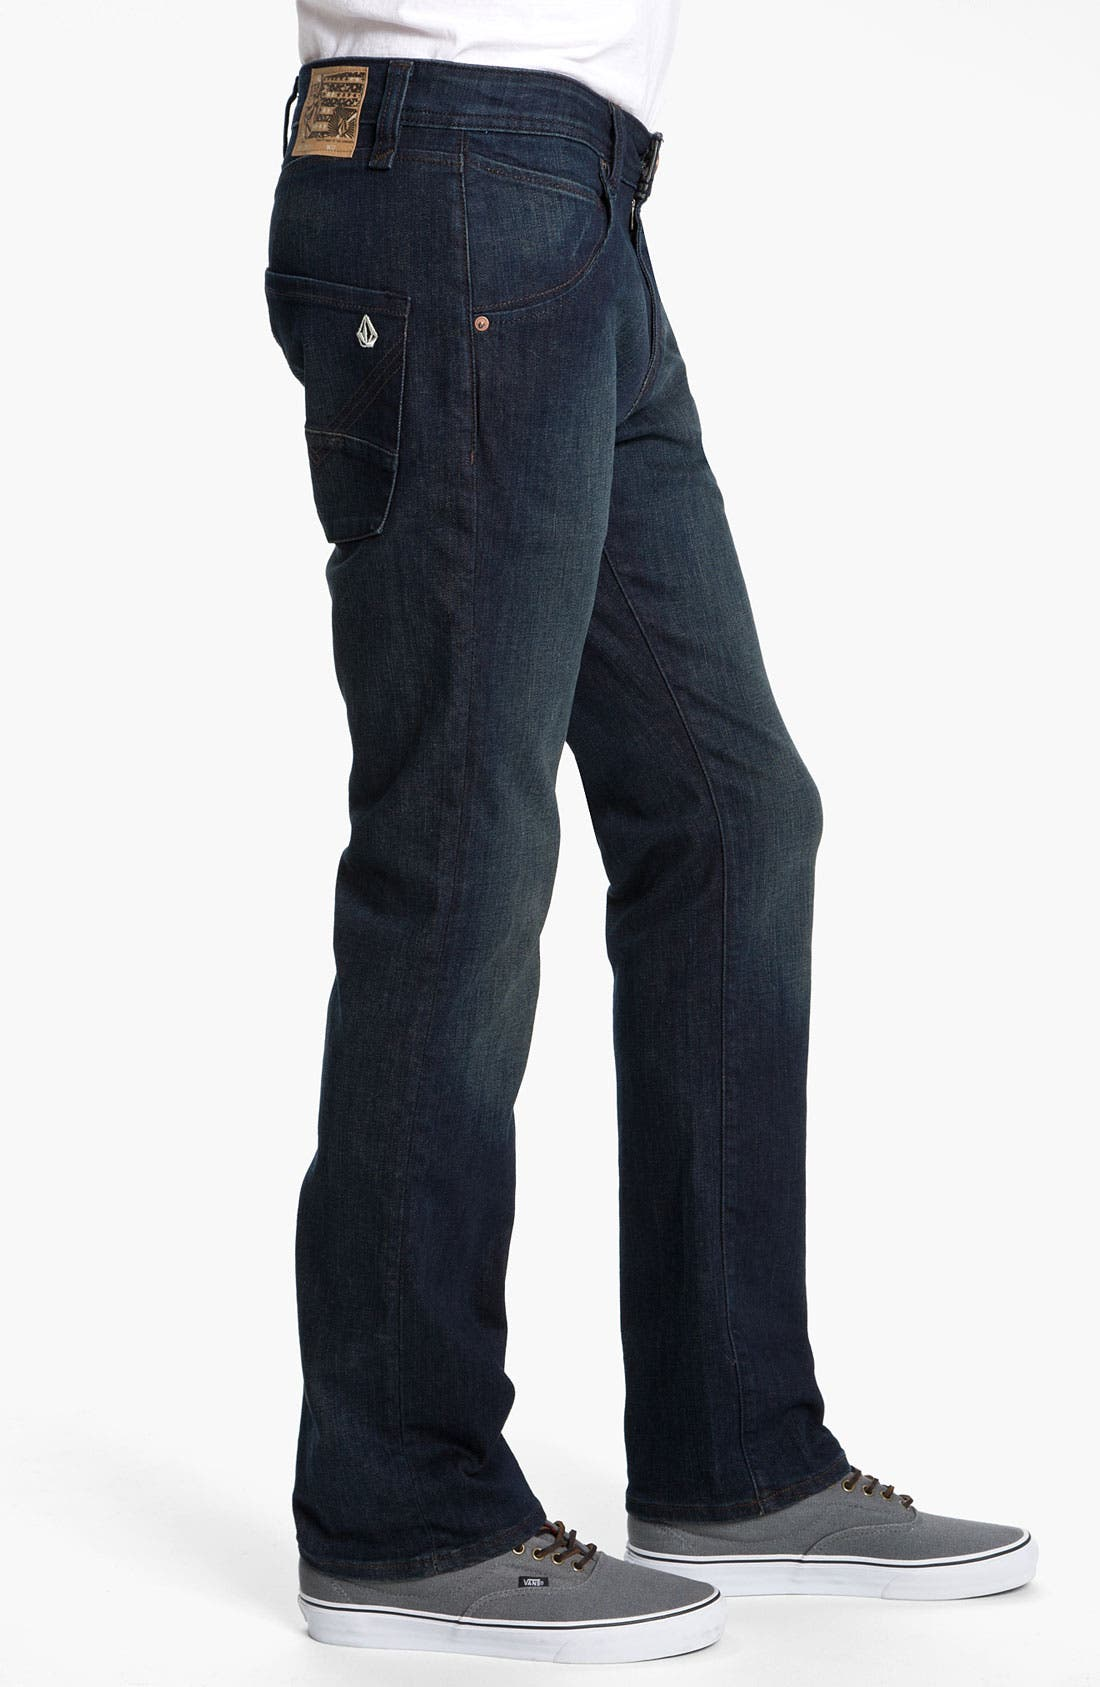 Alternate Image 3  - Volcom 'Nova' Slim Straight Leg Jeans (Dark Room Stretch) (Online Exclusive)